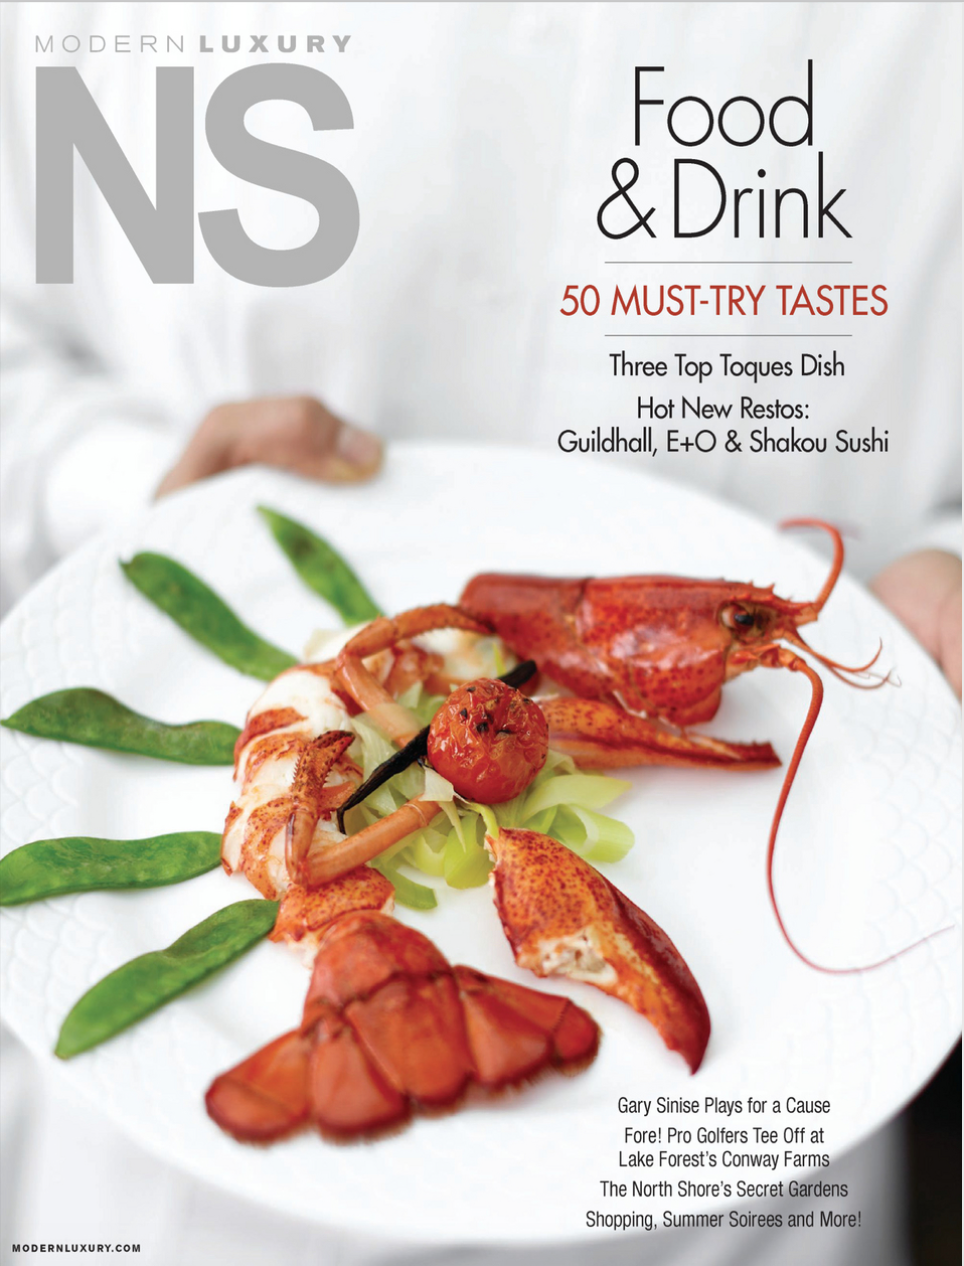 Froggy's Signature Lobster in Vanilla Sauce on the cover of  NS Magazine